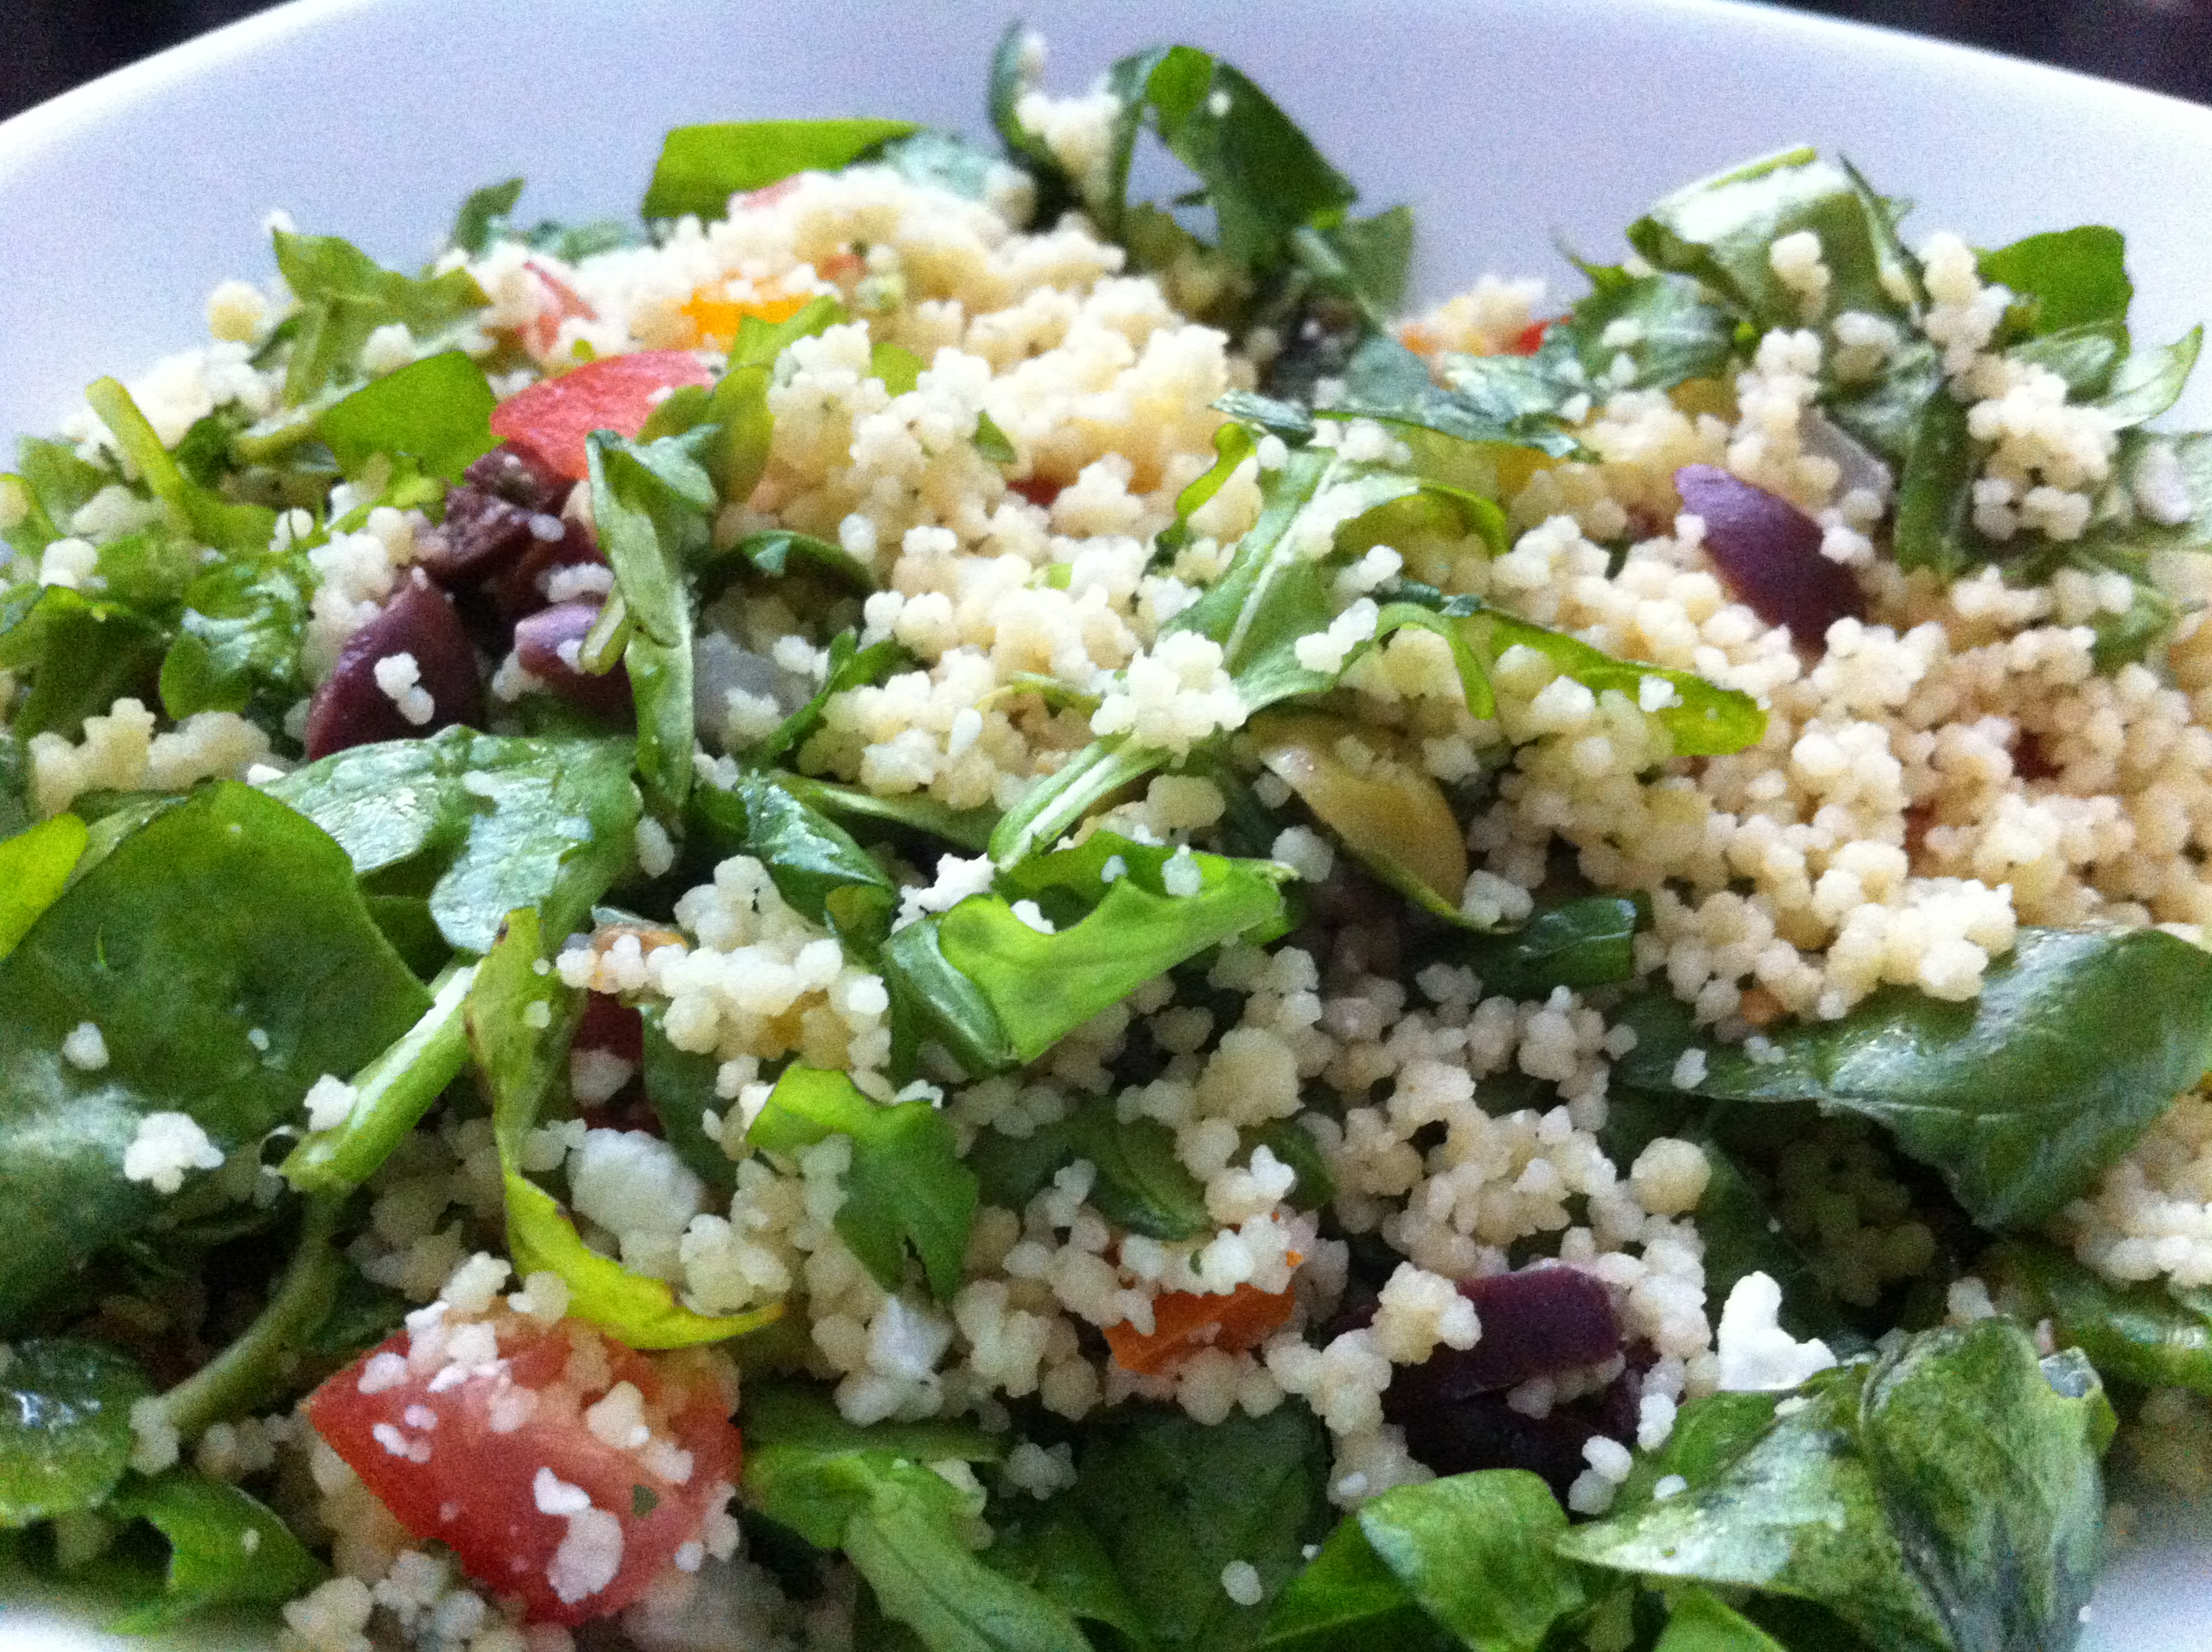 Mediterranean Couscous Salad with Arugula and Spinach